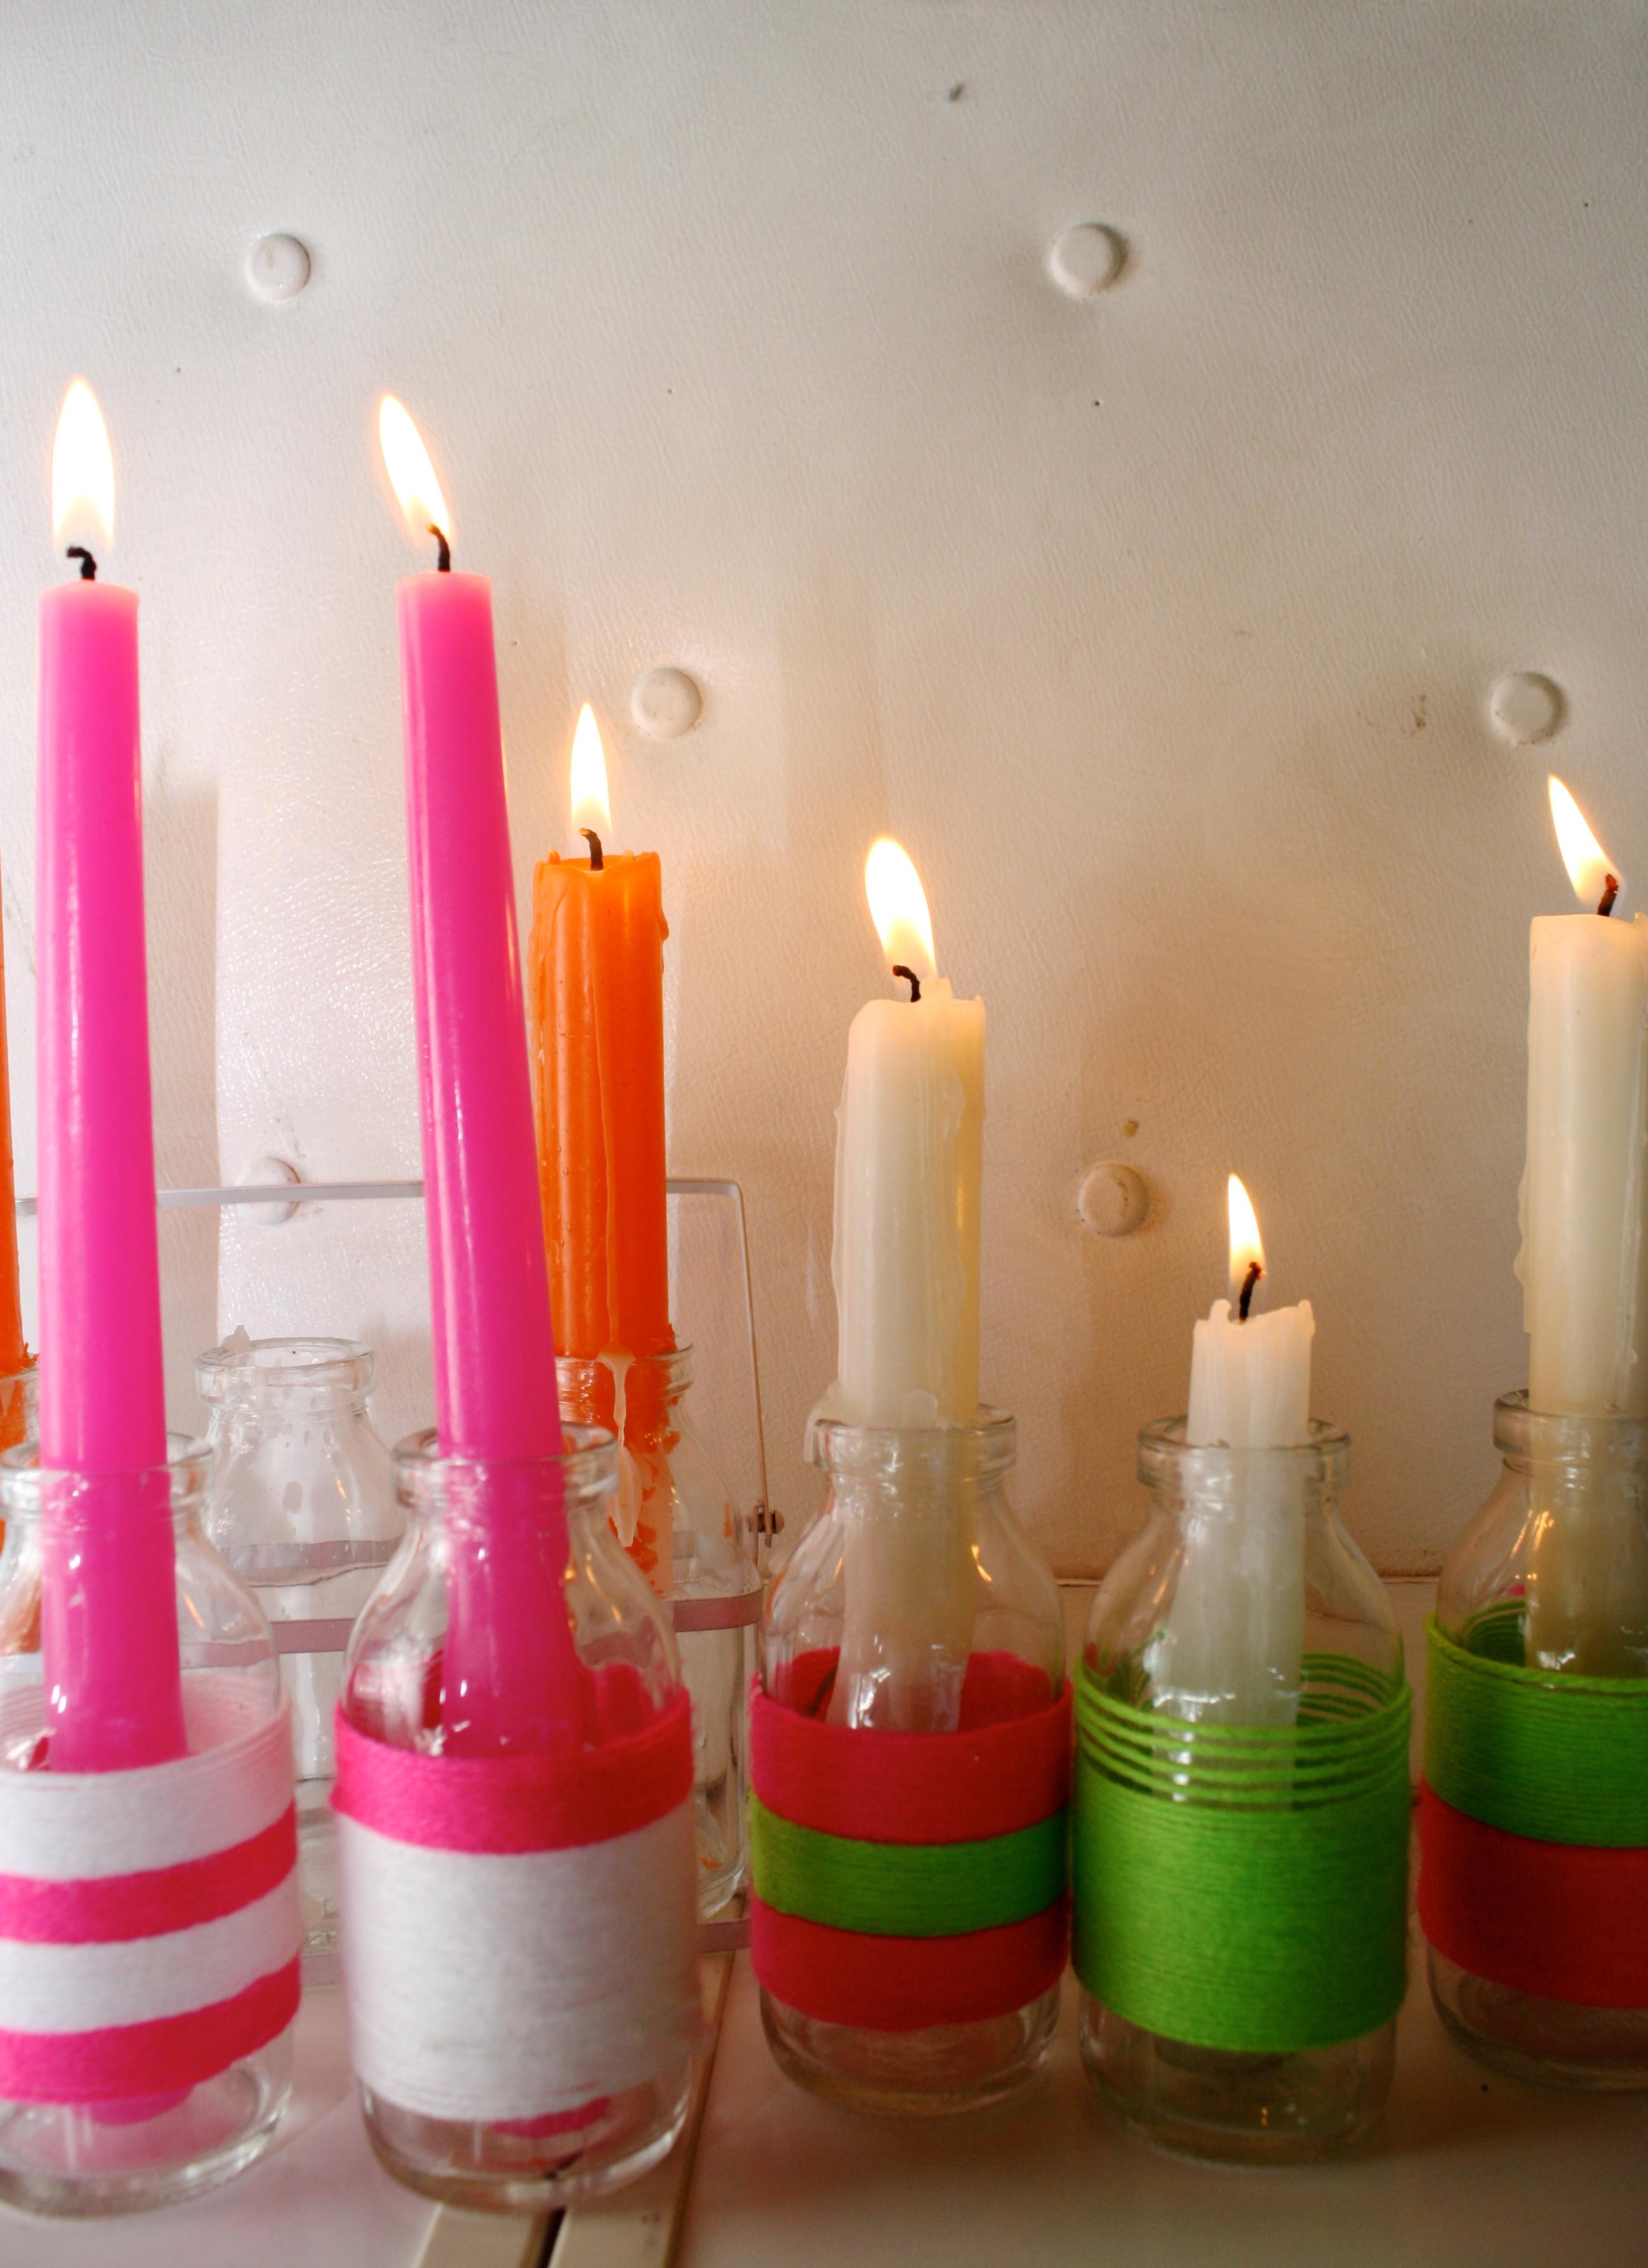 Best ideas about DIY Candle Holders . Save or Pin 301 Moved Permanently Now.